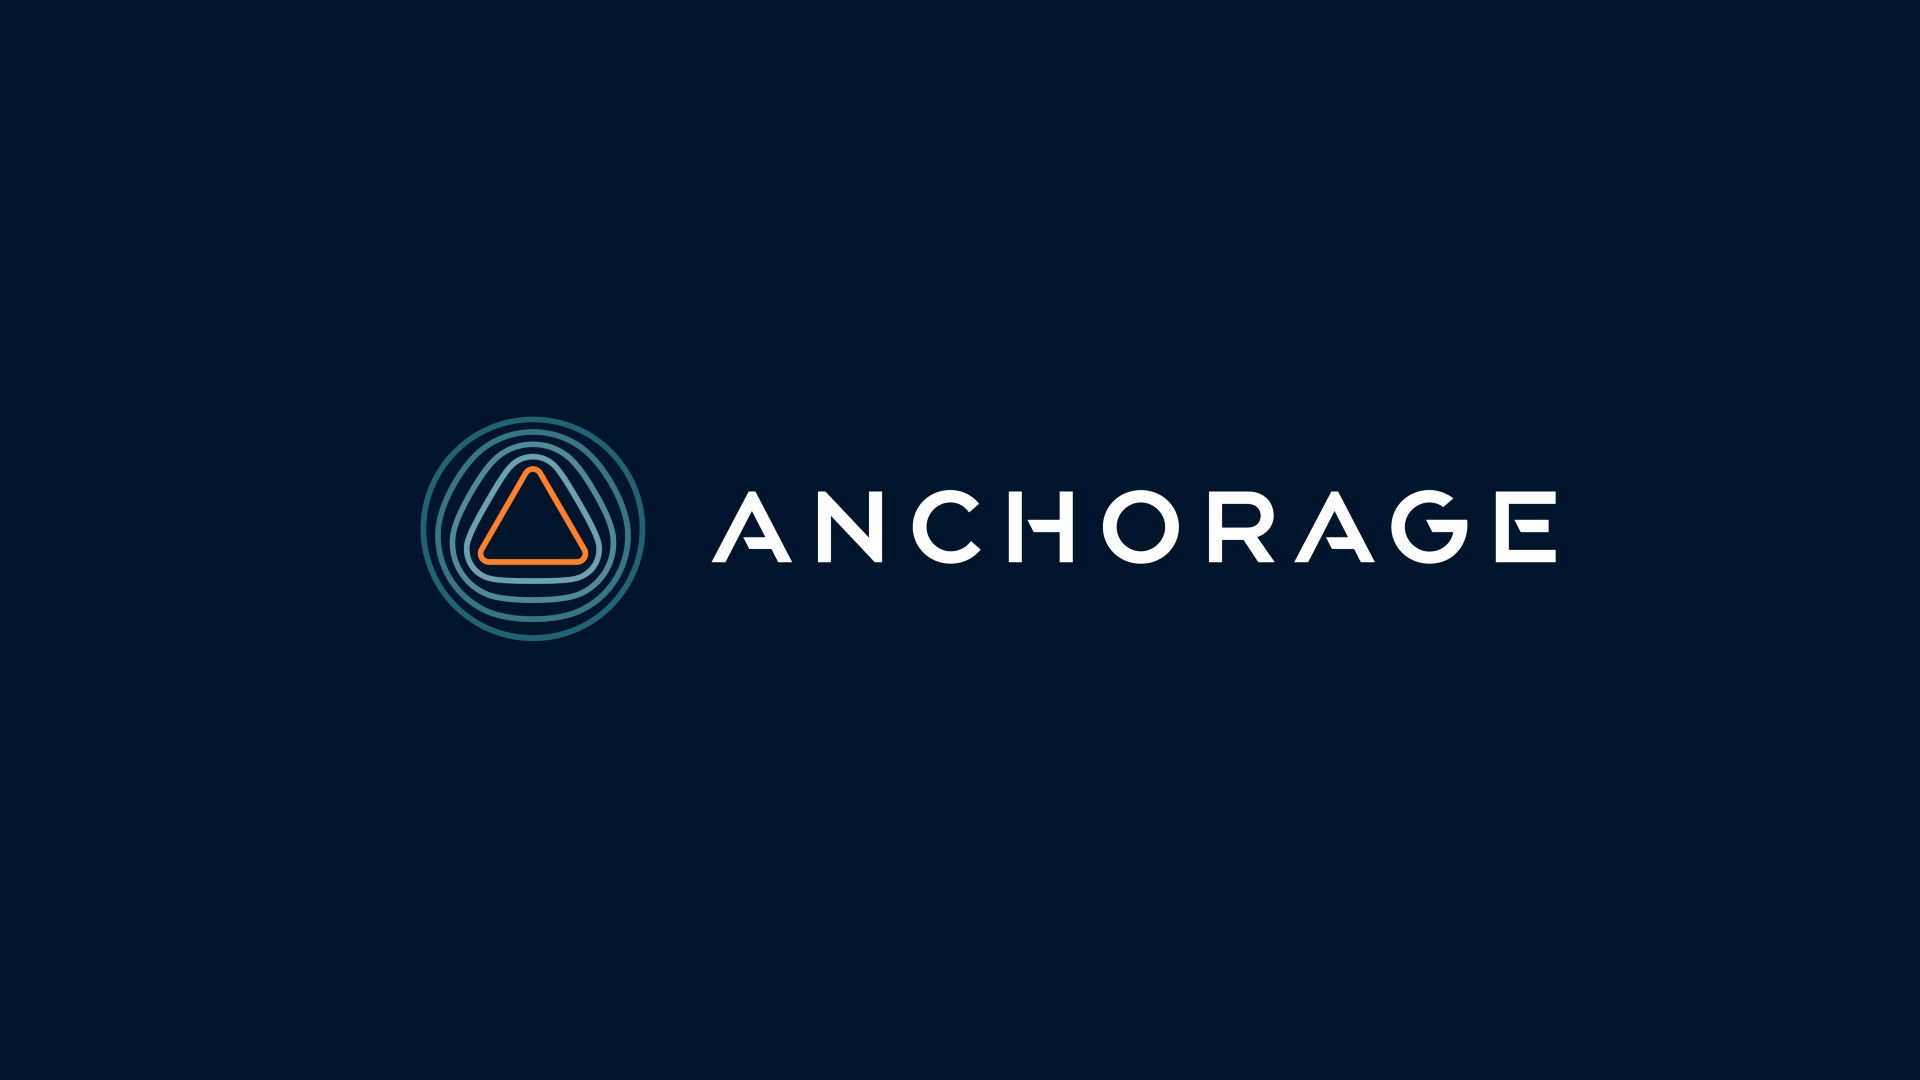 Crypto custodian and bank Anchorage raises $80 million in Series C